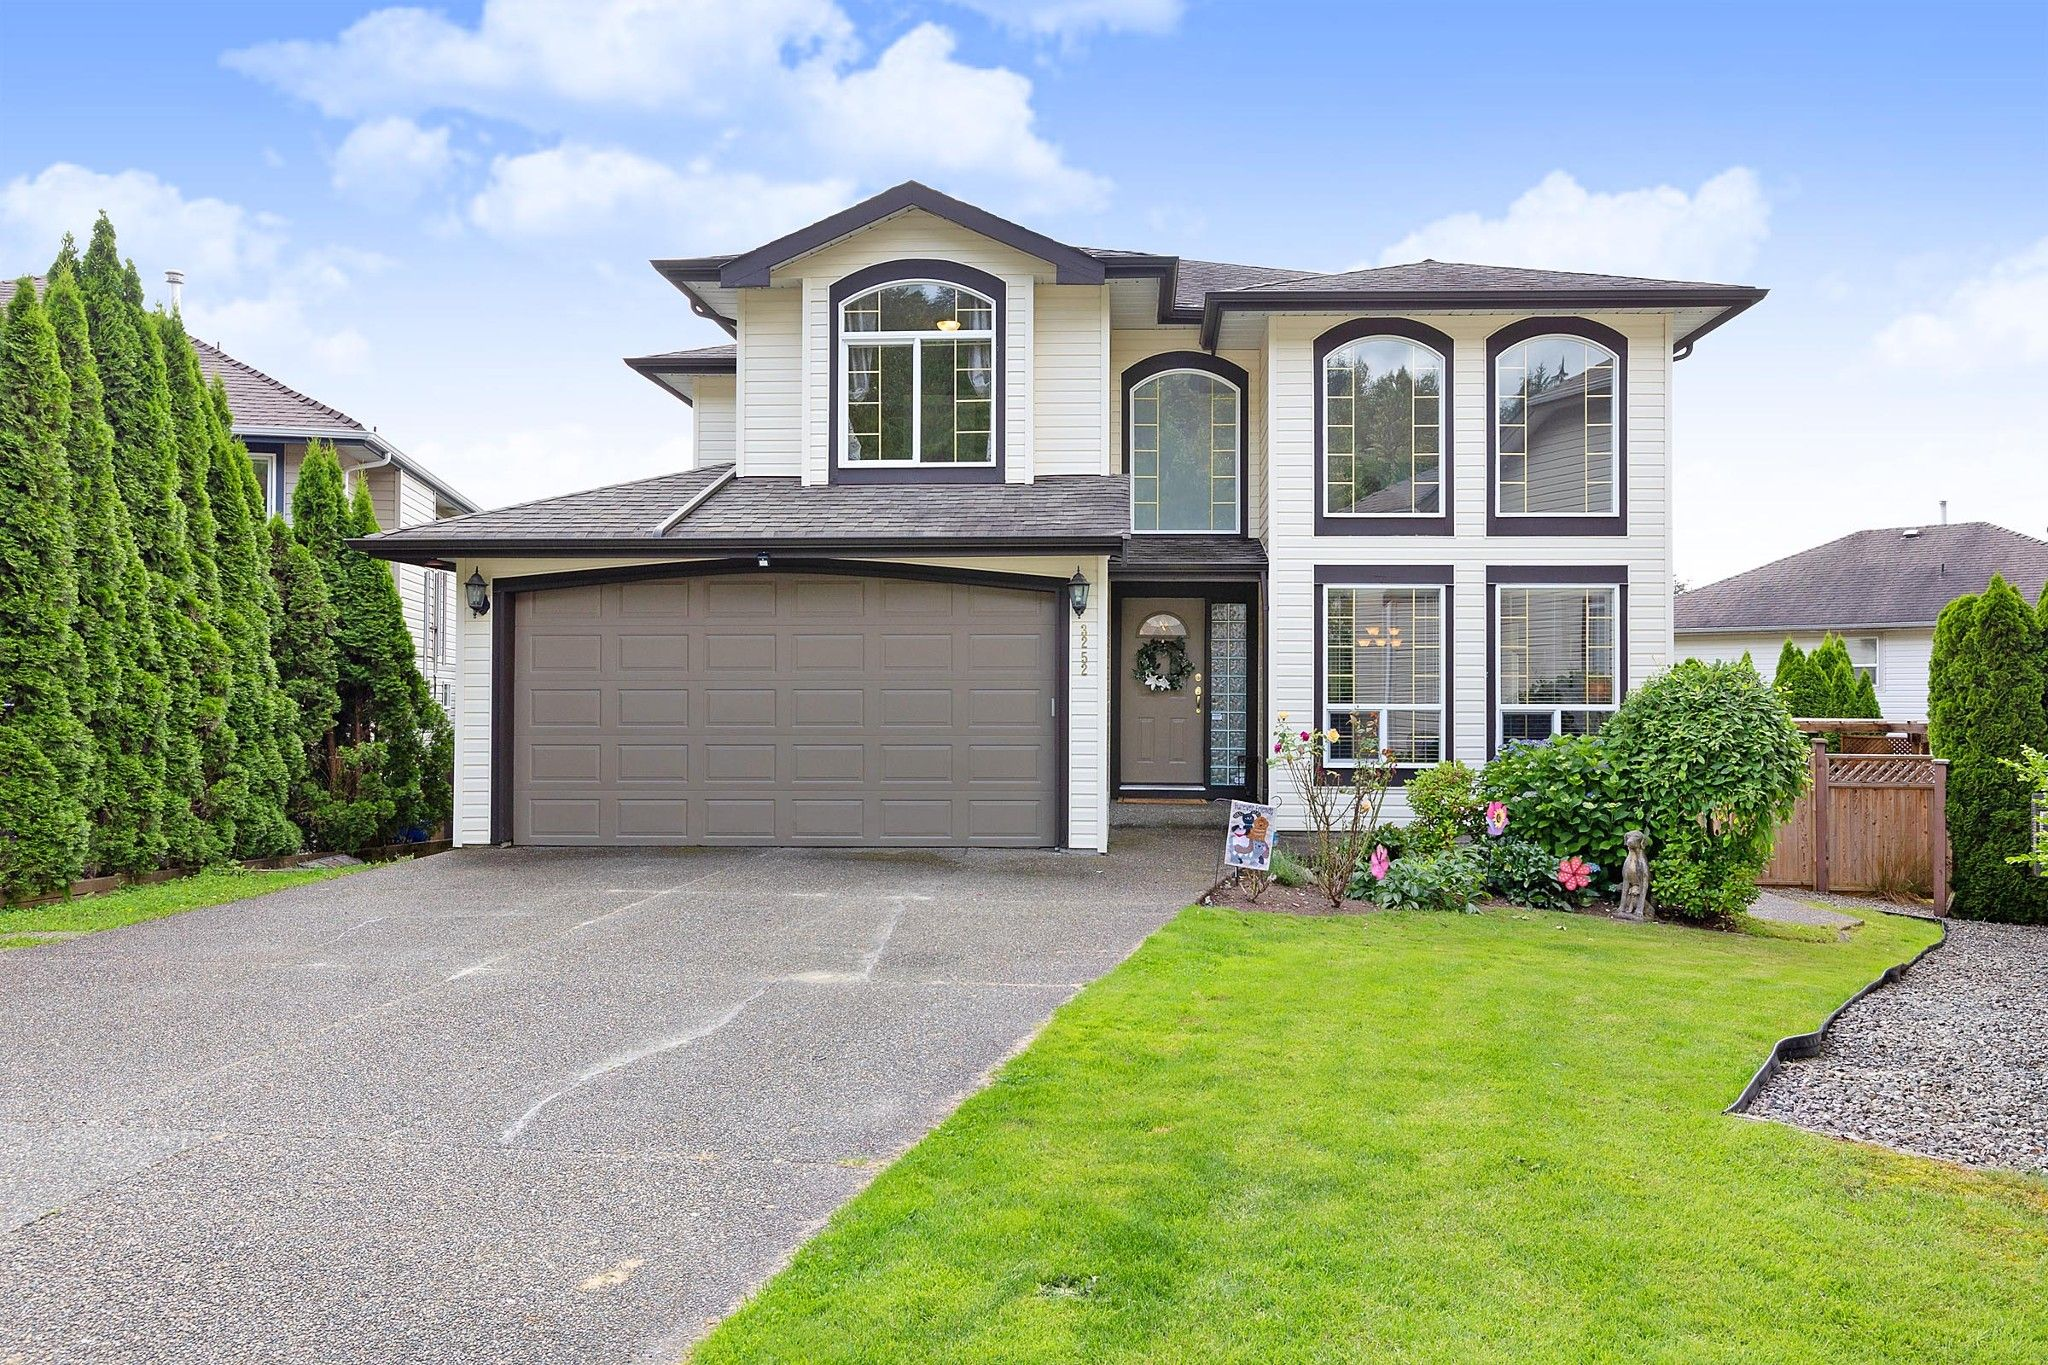 """Main Photo: 3252 KARLEY Crescent in Coquitlam: River Springs House for sale in """"HYDE PARK ESTATES"""" : MLS®# R2474303"""